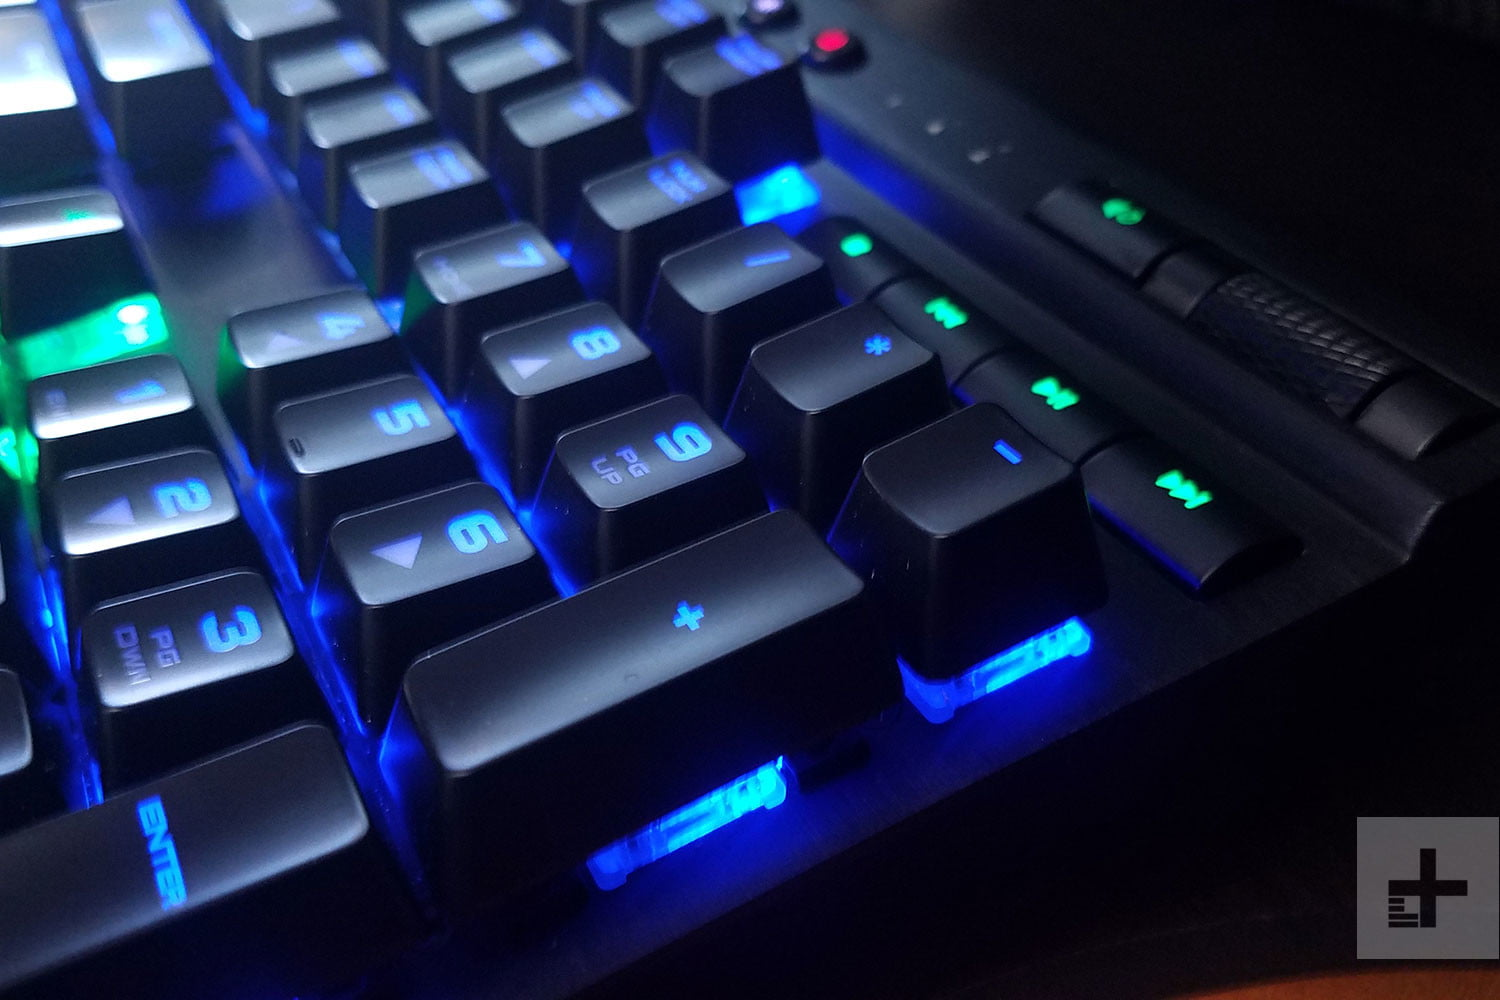 Corsair K70 Rgb Rapidfire Review Mechanical Gaming Keyboard Red Switch Used